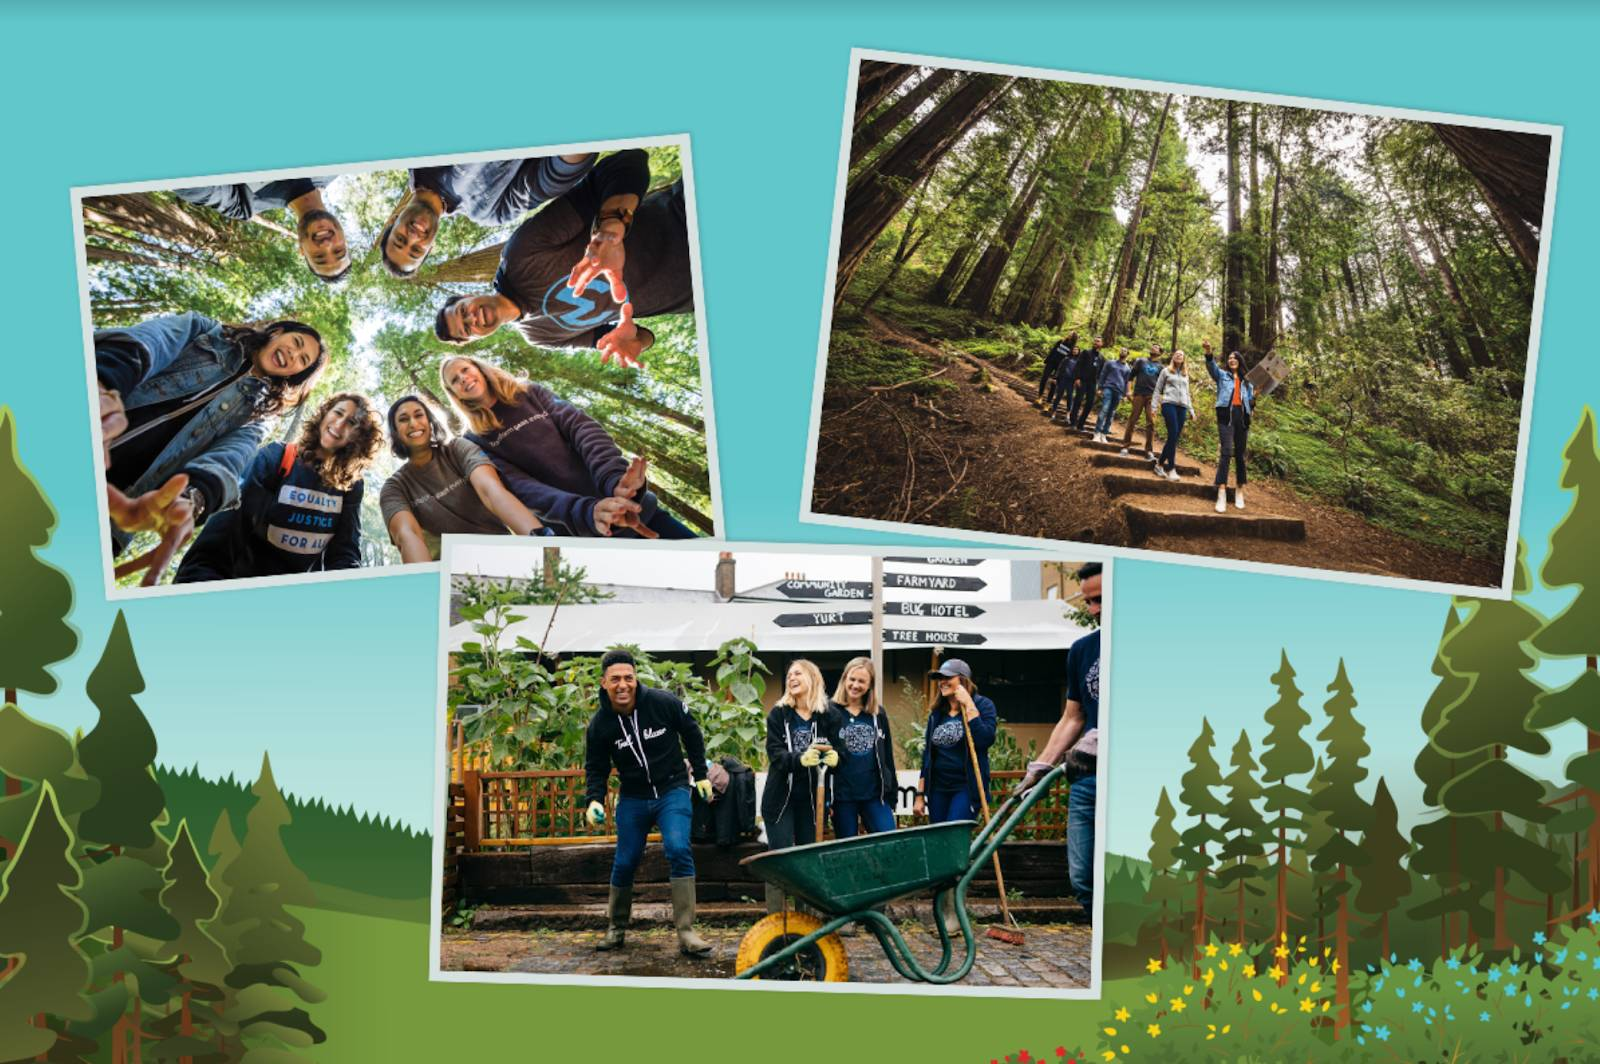 Photo collage of Salesforce employees working outdoors on various tree volunteering projects.